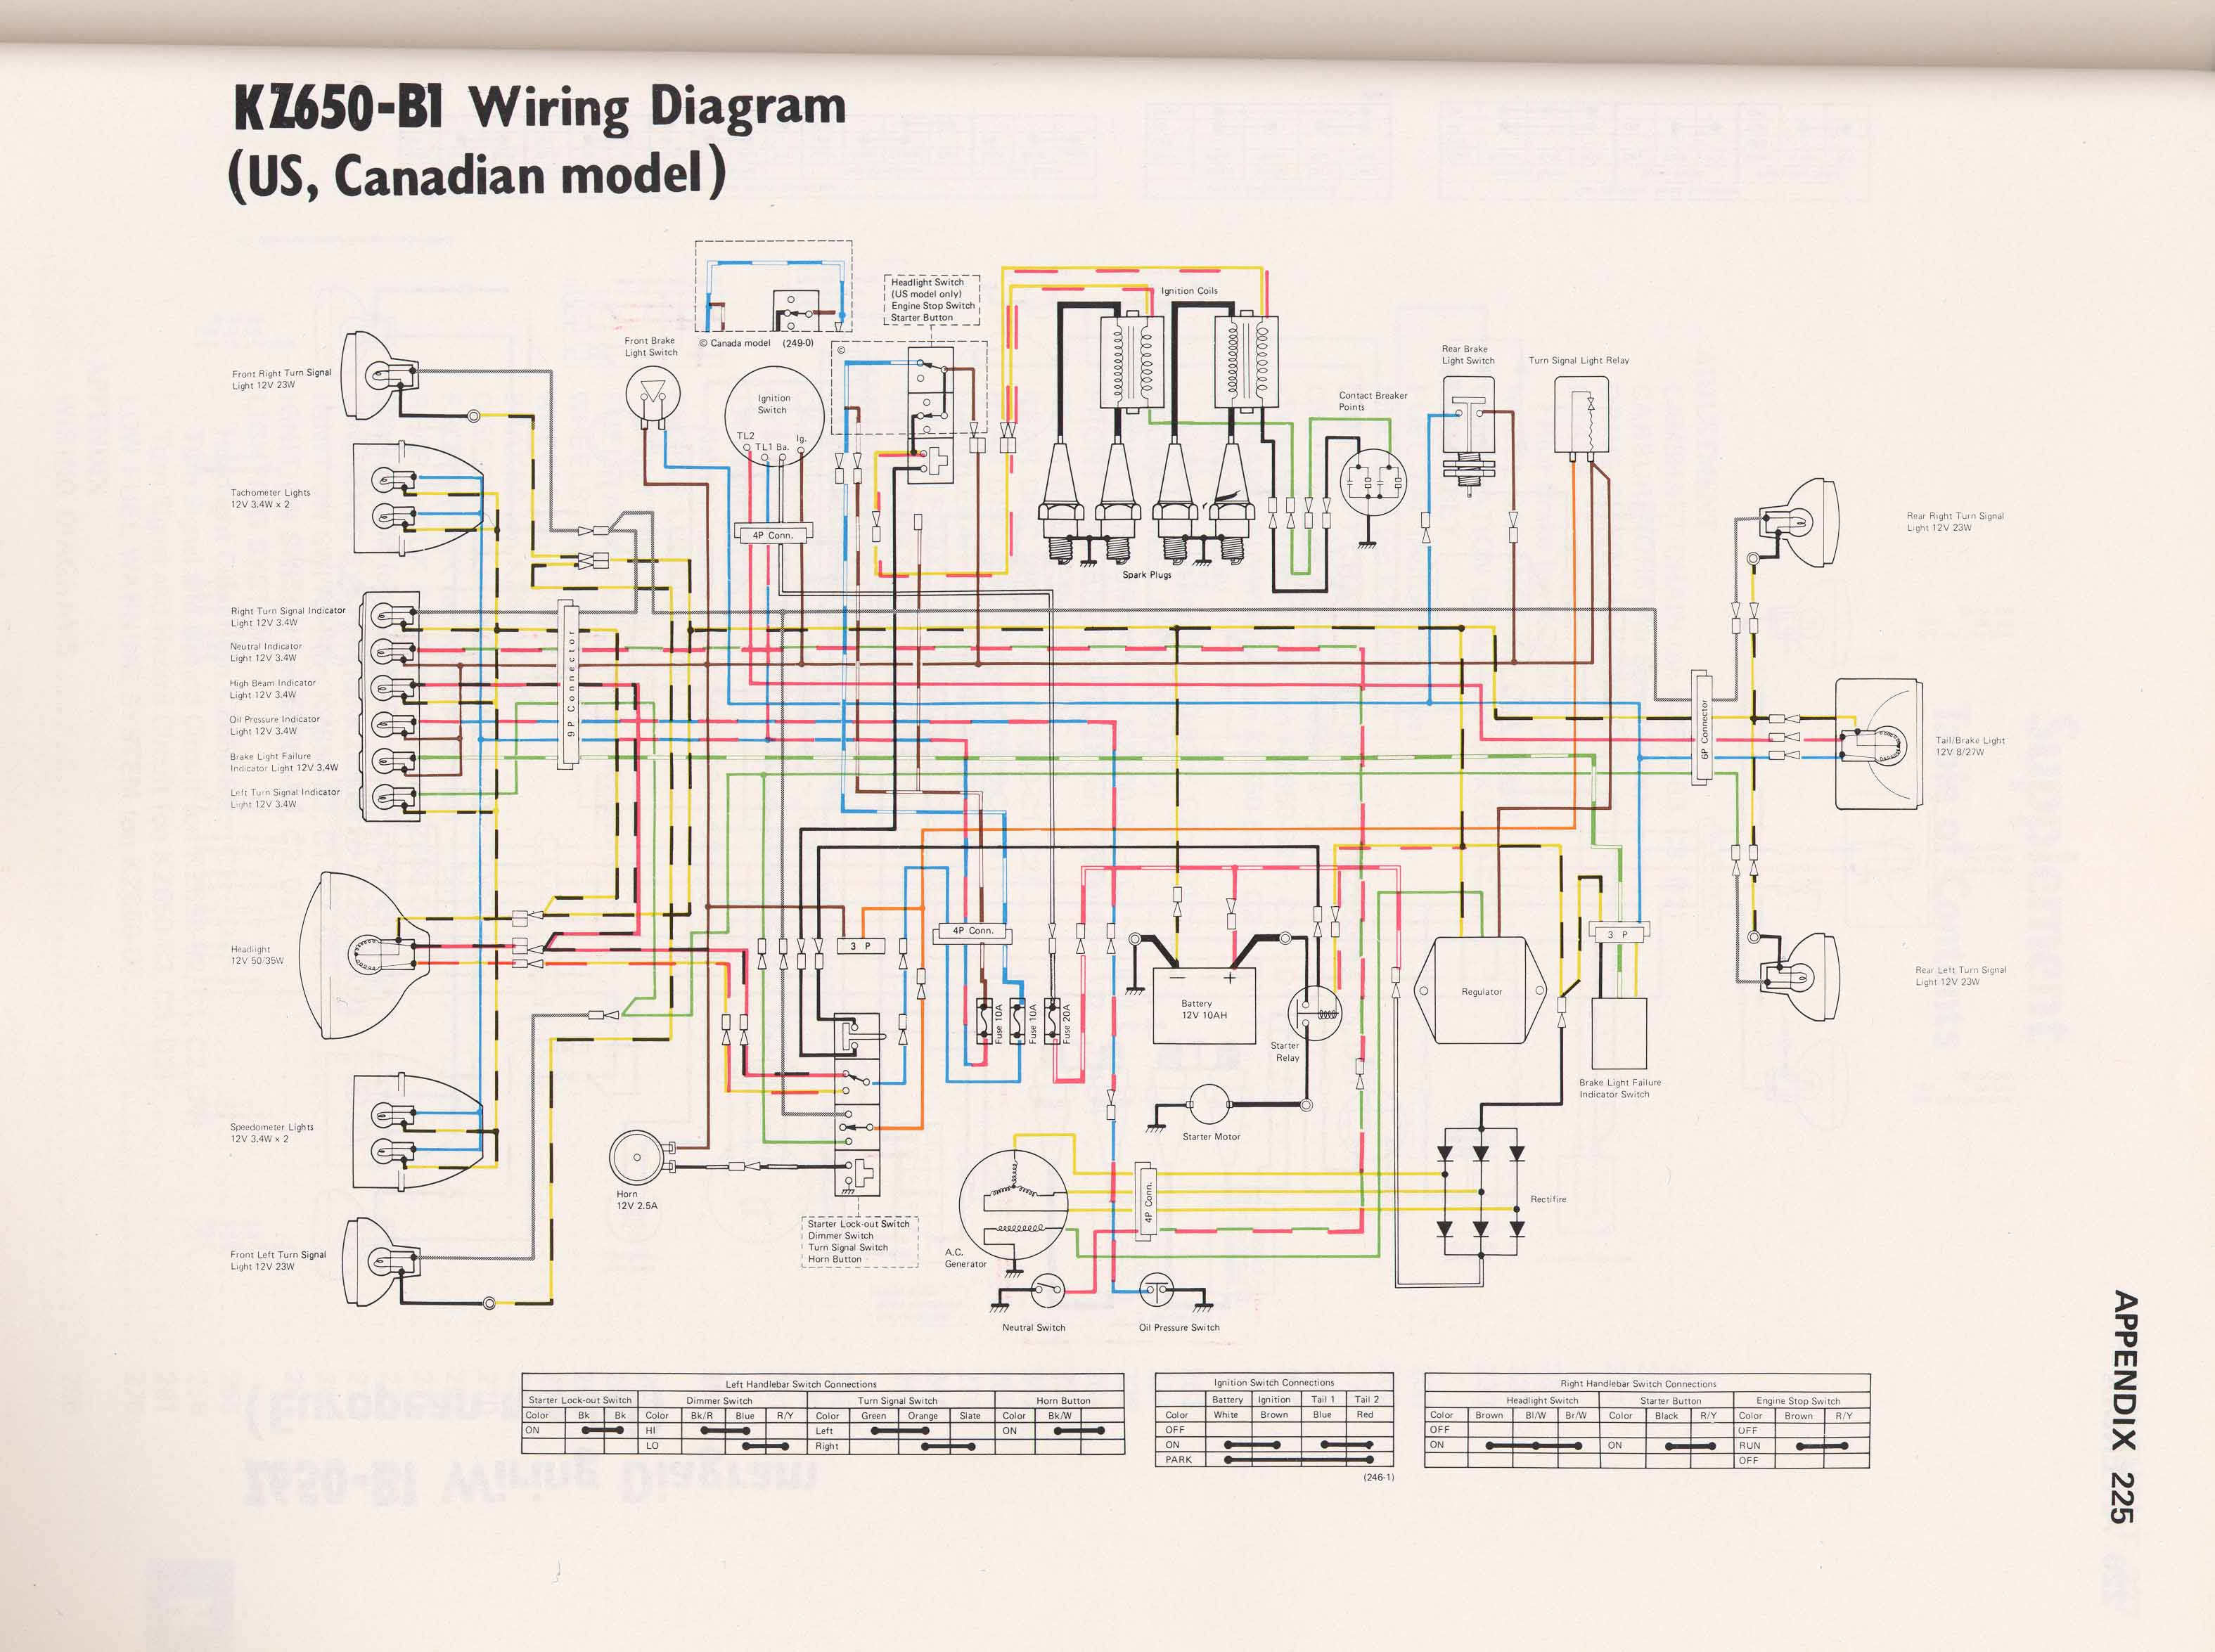 KZ650 B1 kz650 info wiring diagrams ignition wiring diagram at panicattacktreatment.co